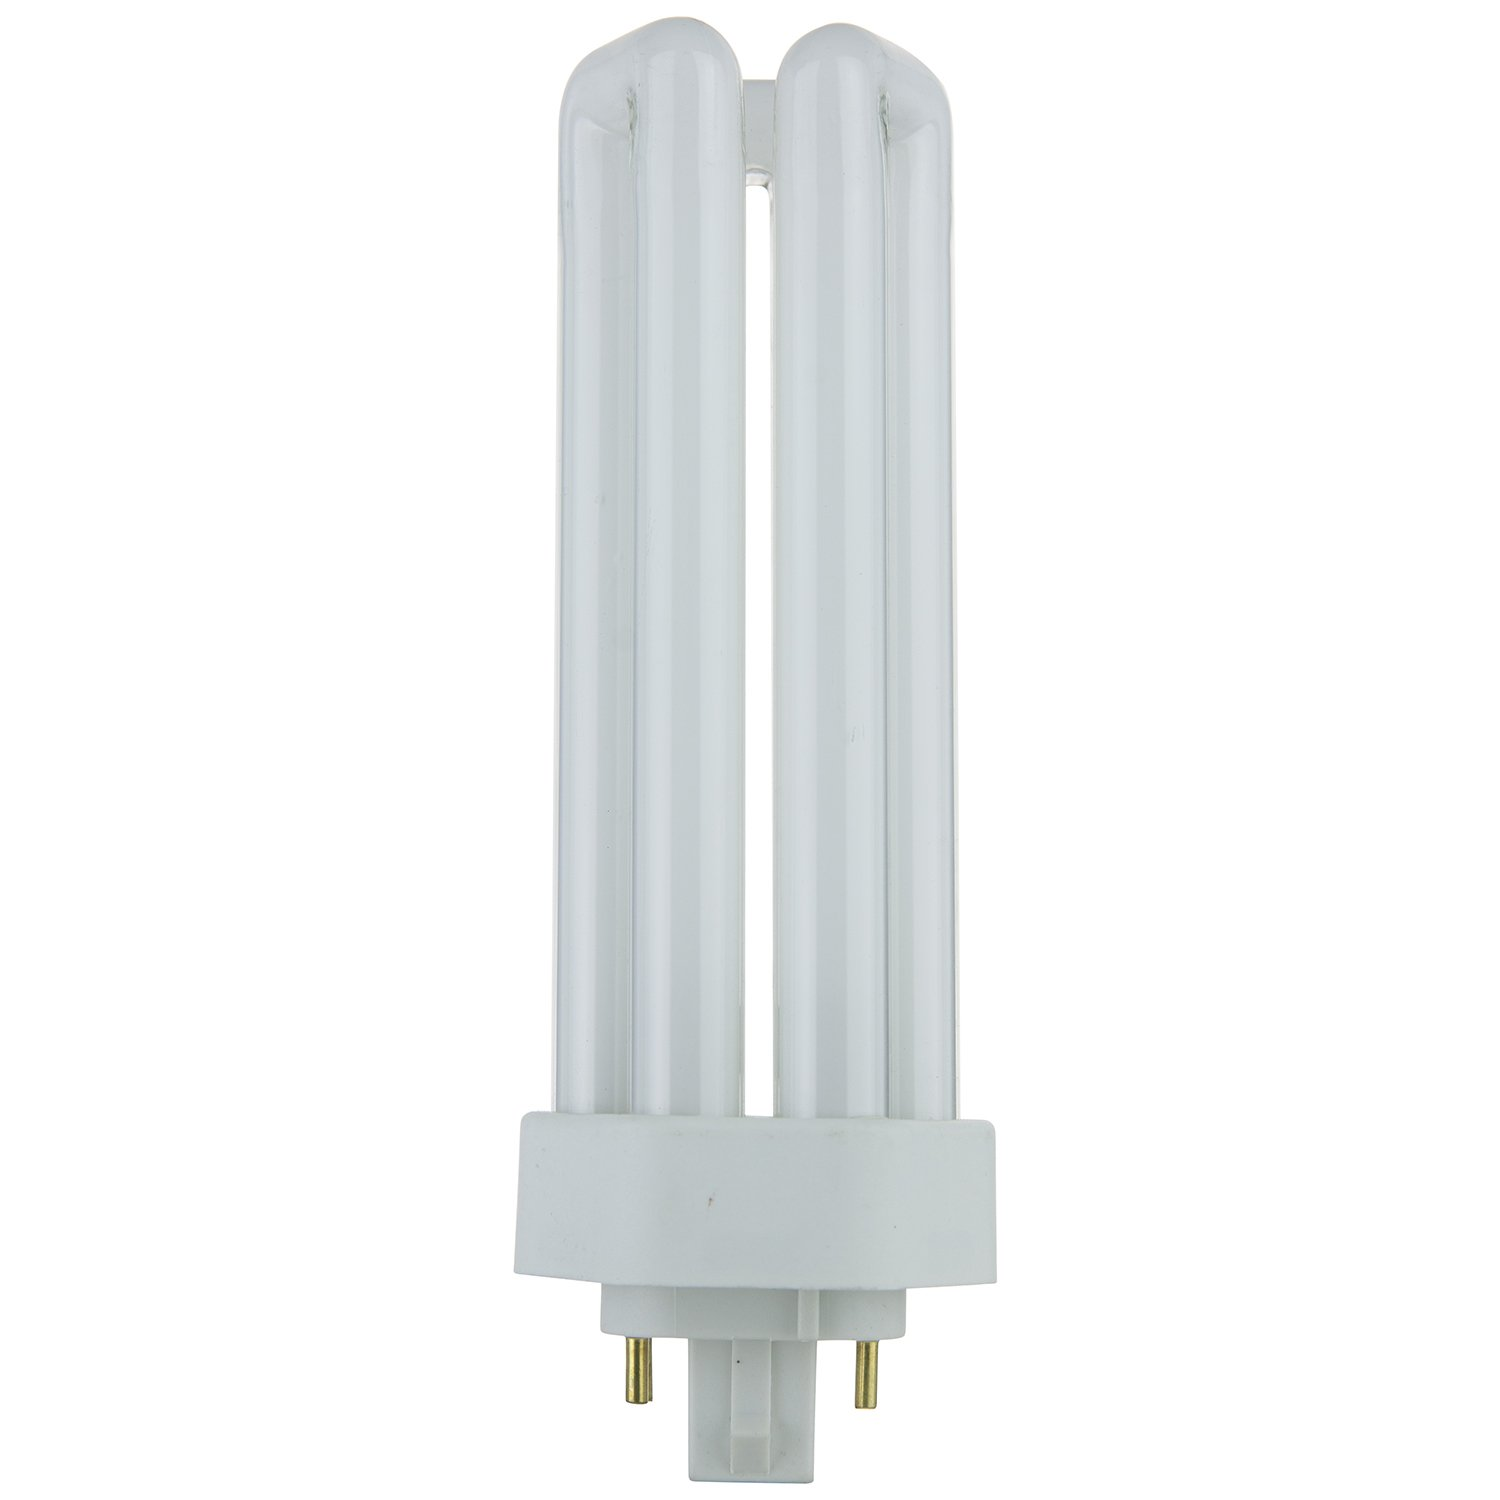 Sunlite PLT32/E/SP50K/10PK Fluorescent 32W PLD Triple U-Shaped Twin Tube CFL Bulbs, 4-Pin GX24Q-3 Base, 5000K Super White, 10 Pack, 5000K-Super by Sunlite (Image #2)